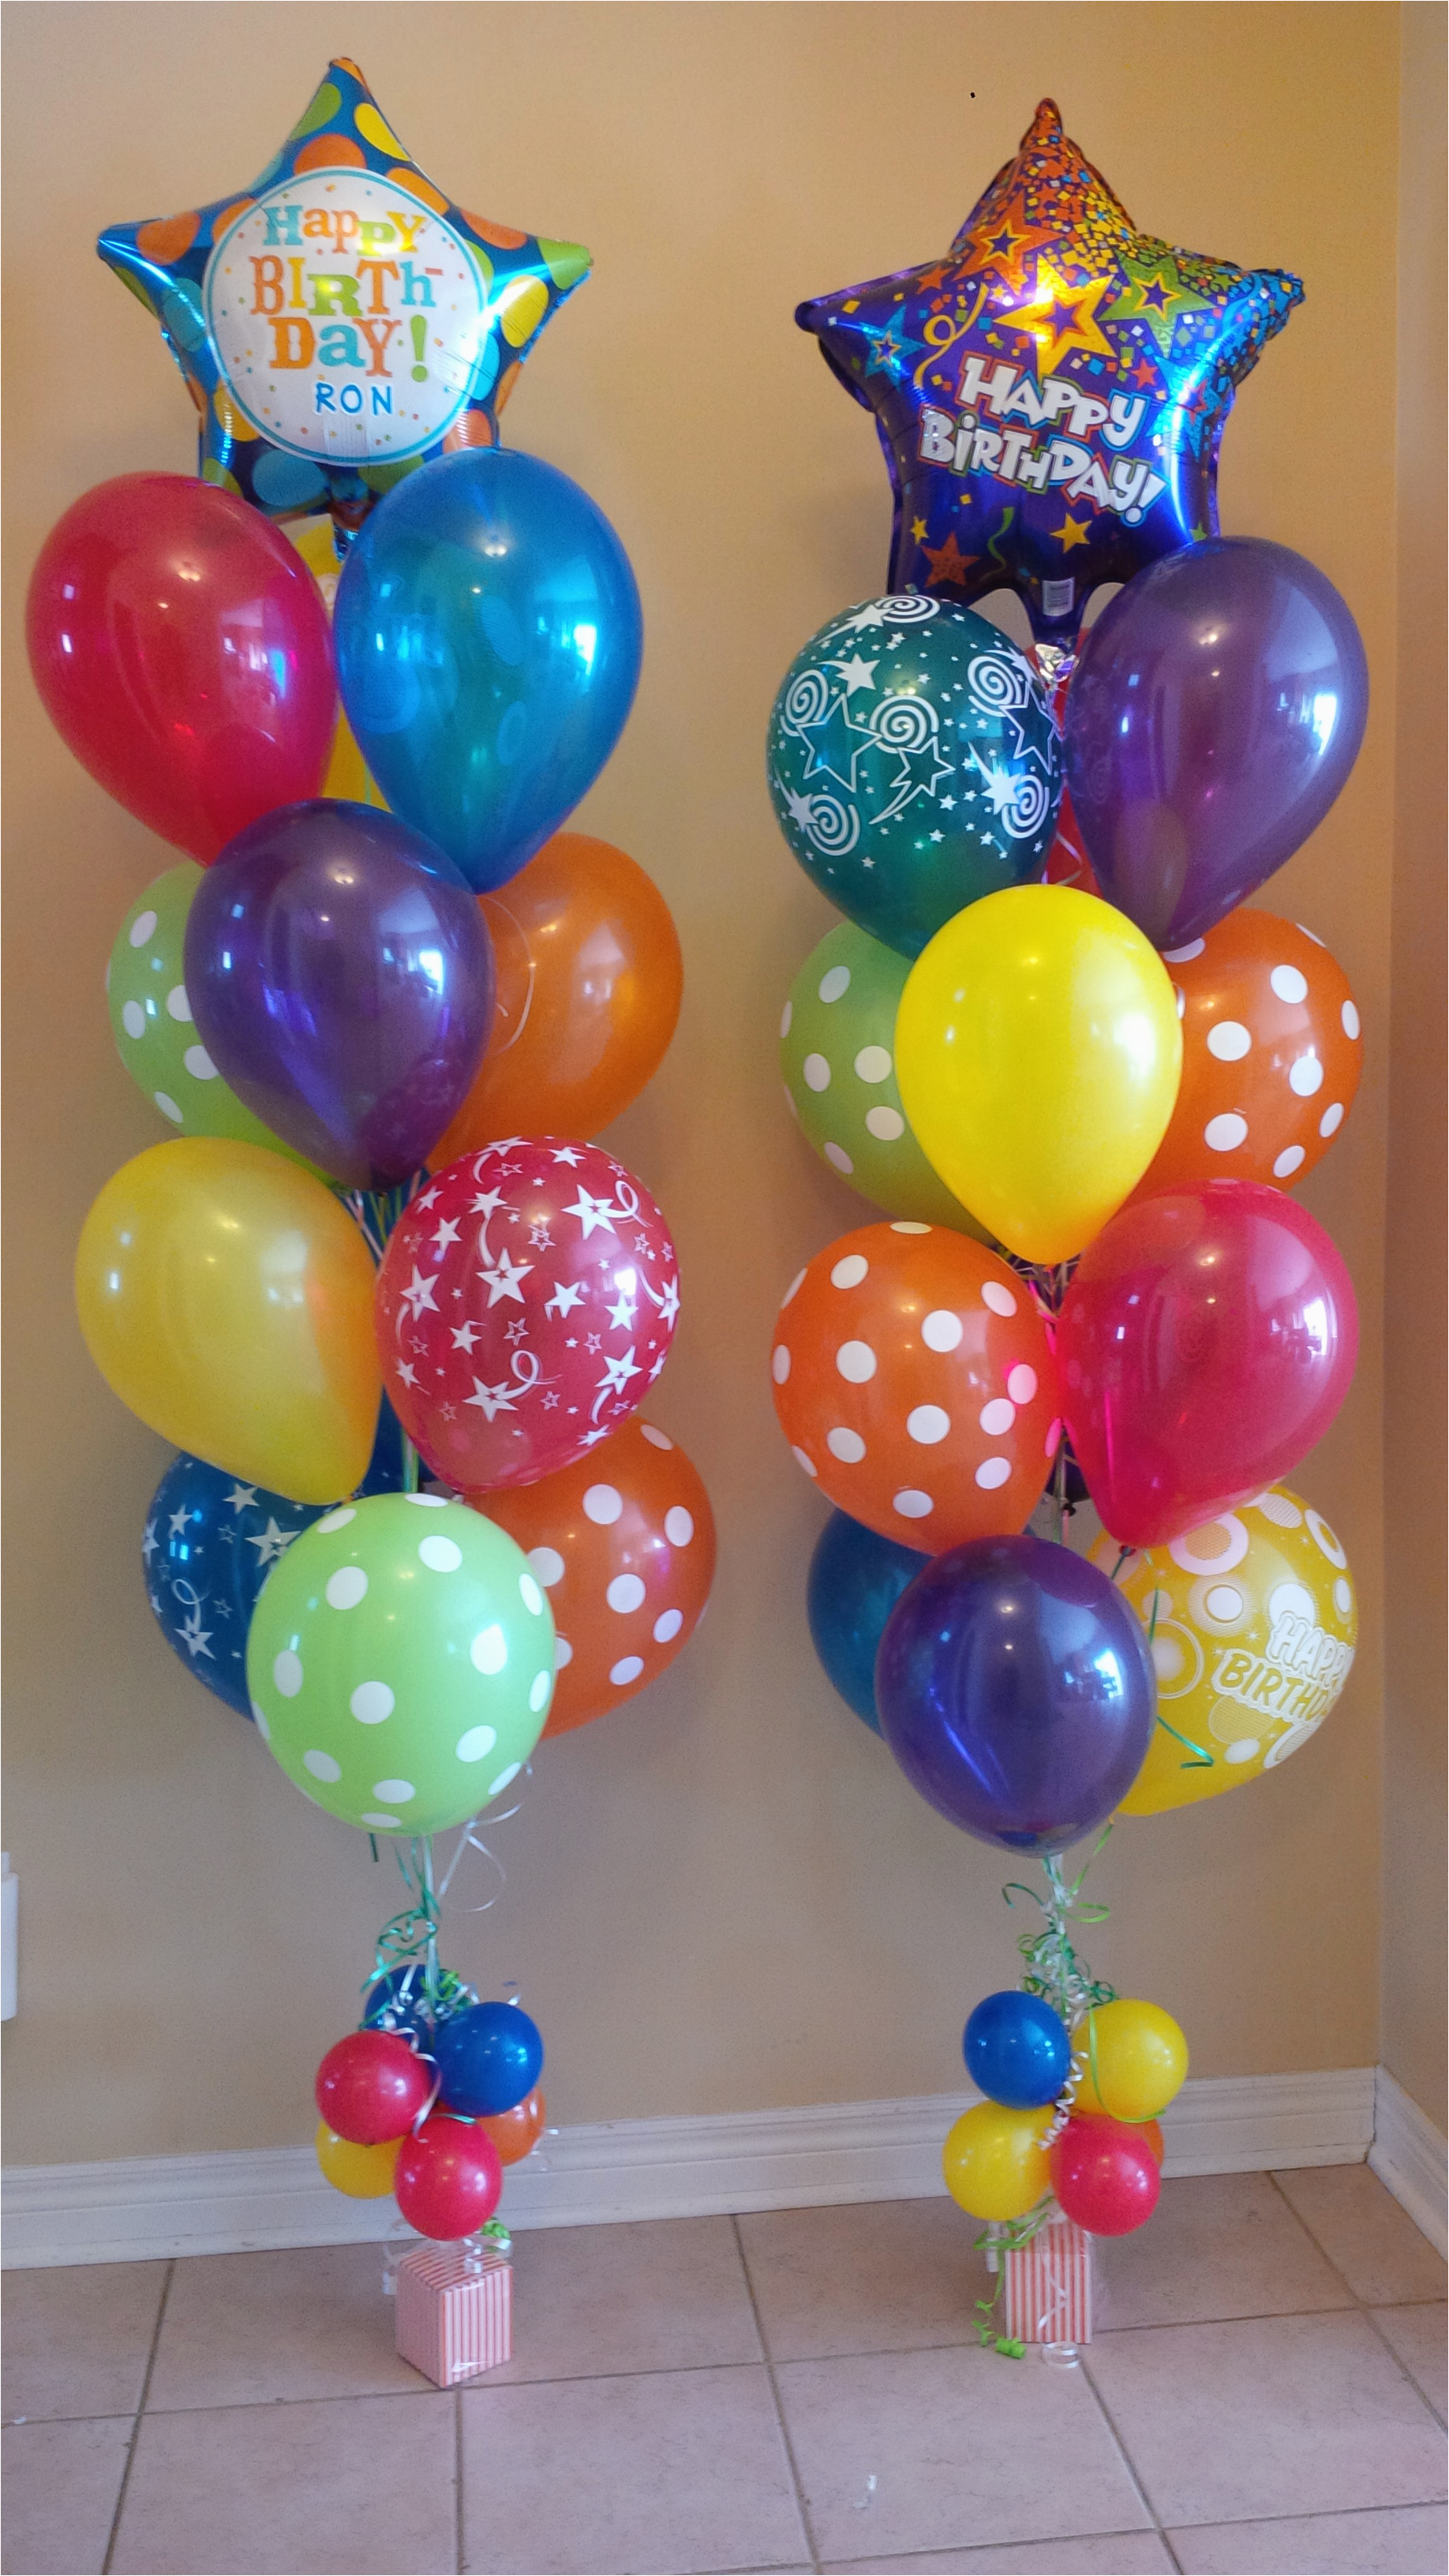 Birthday Flowers And Balloons Delivered Balloon Bouquet Gifts Delivery Toronto Call 416 224